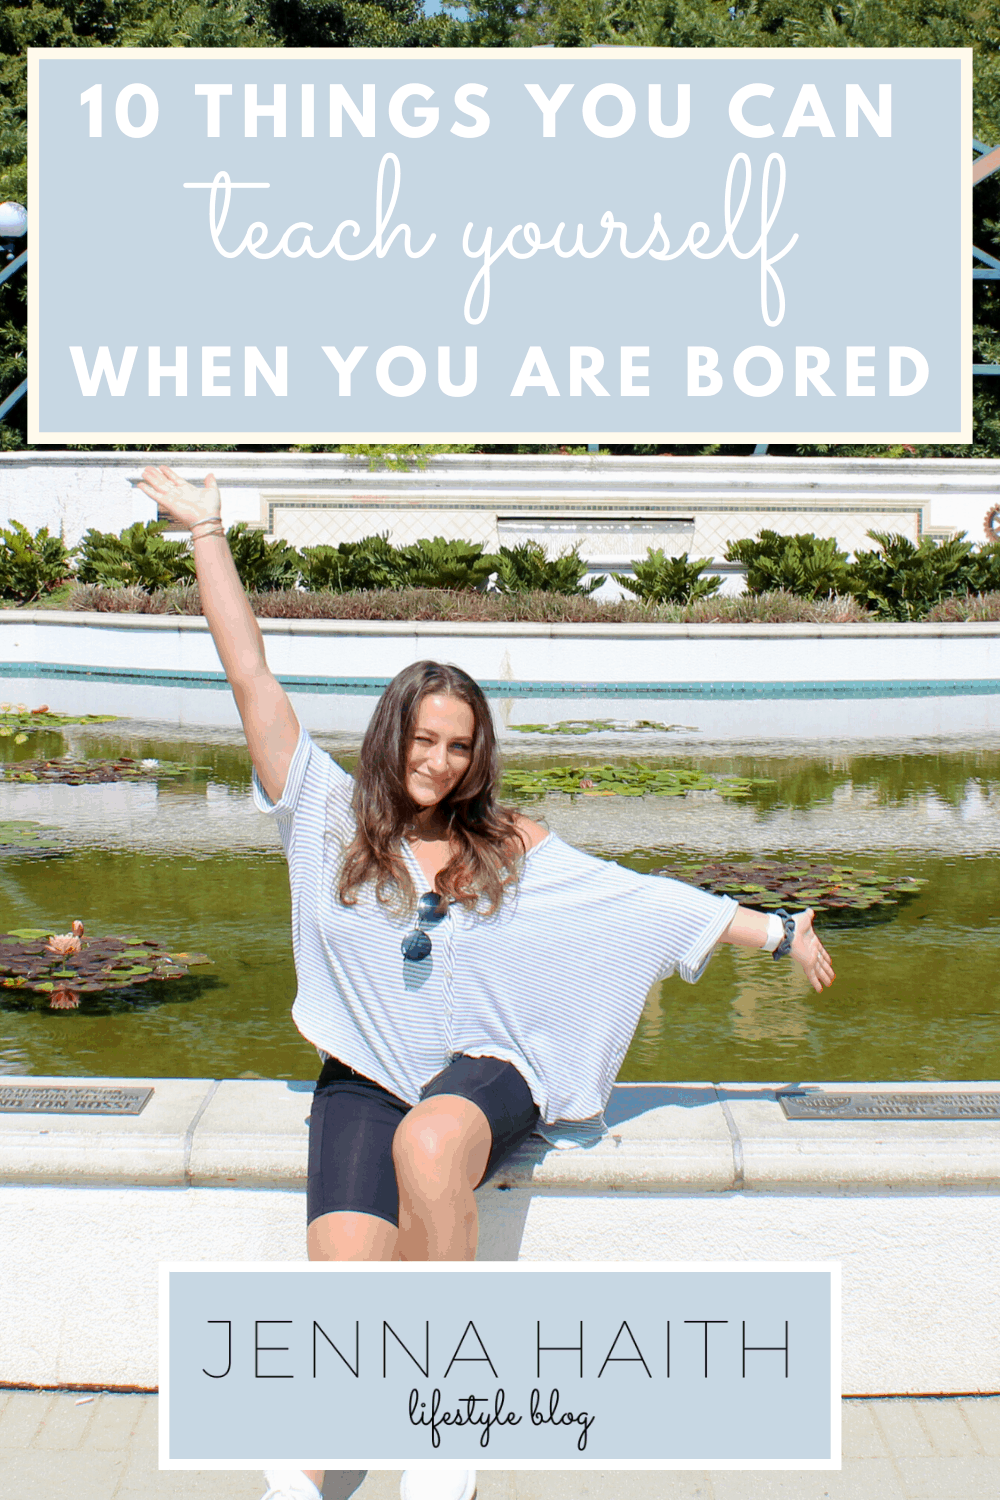 10 Things You Can Teach Yourself When You Are Bored